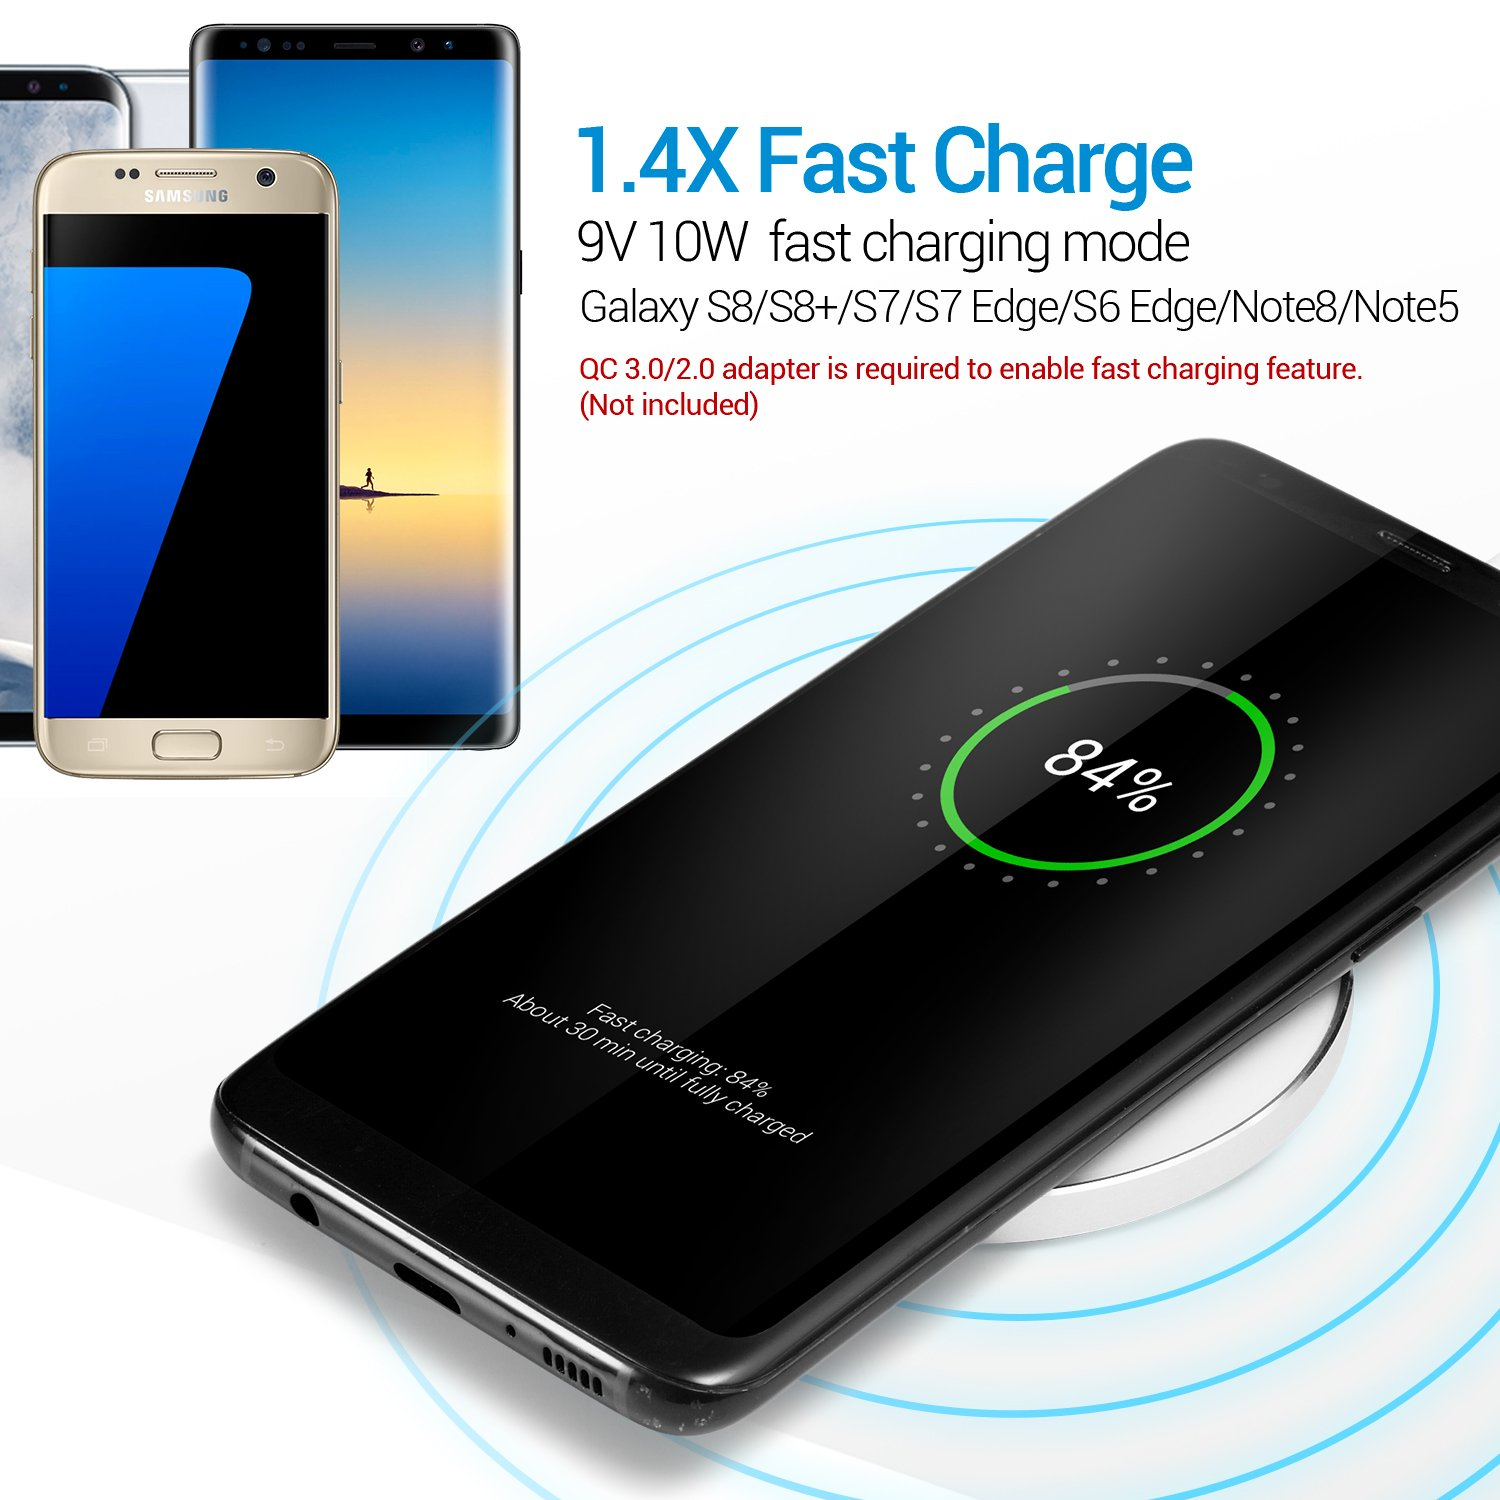 etc. 7 Plus iPhone 7 iPhone X iPhone 8 Nexus Note 8 8 Plus LEAPCOVER Aluminum QI Wireless Charging Pad for IOS and Android Smartphone Devices Samsung Galaxy S7//S6//Edge//Plus White